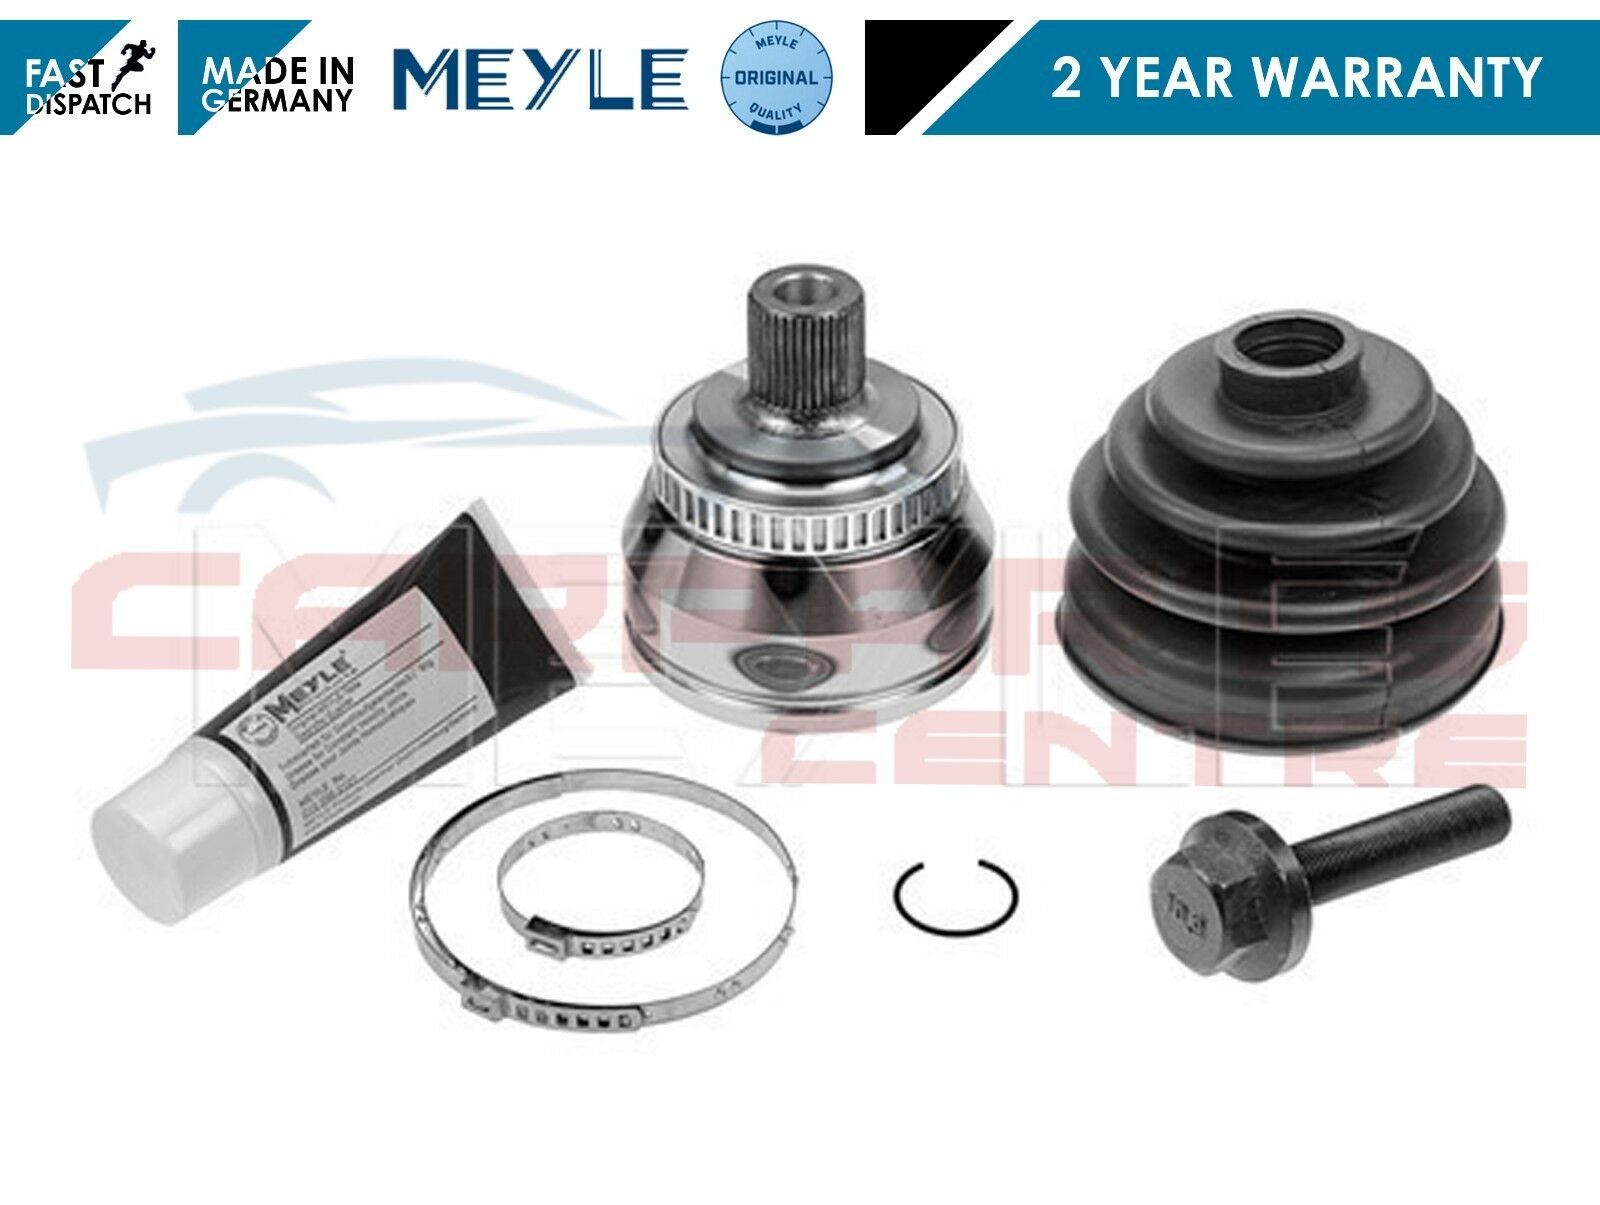 FOR VW SHARAN 1.9 TDi FRONT OUTER MEYLE GERMANY CV JOINT BOOT KIT CLIP 1995-2010